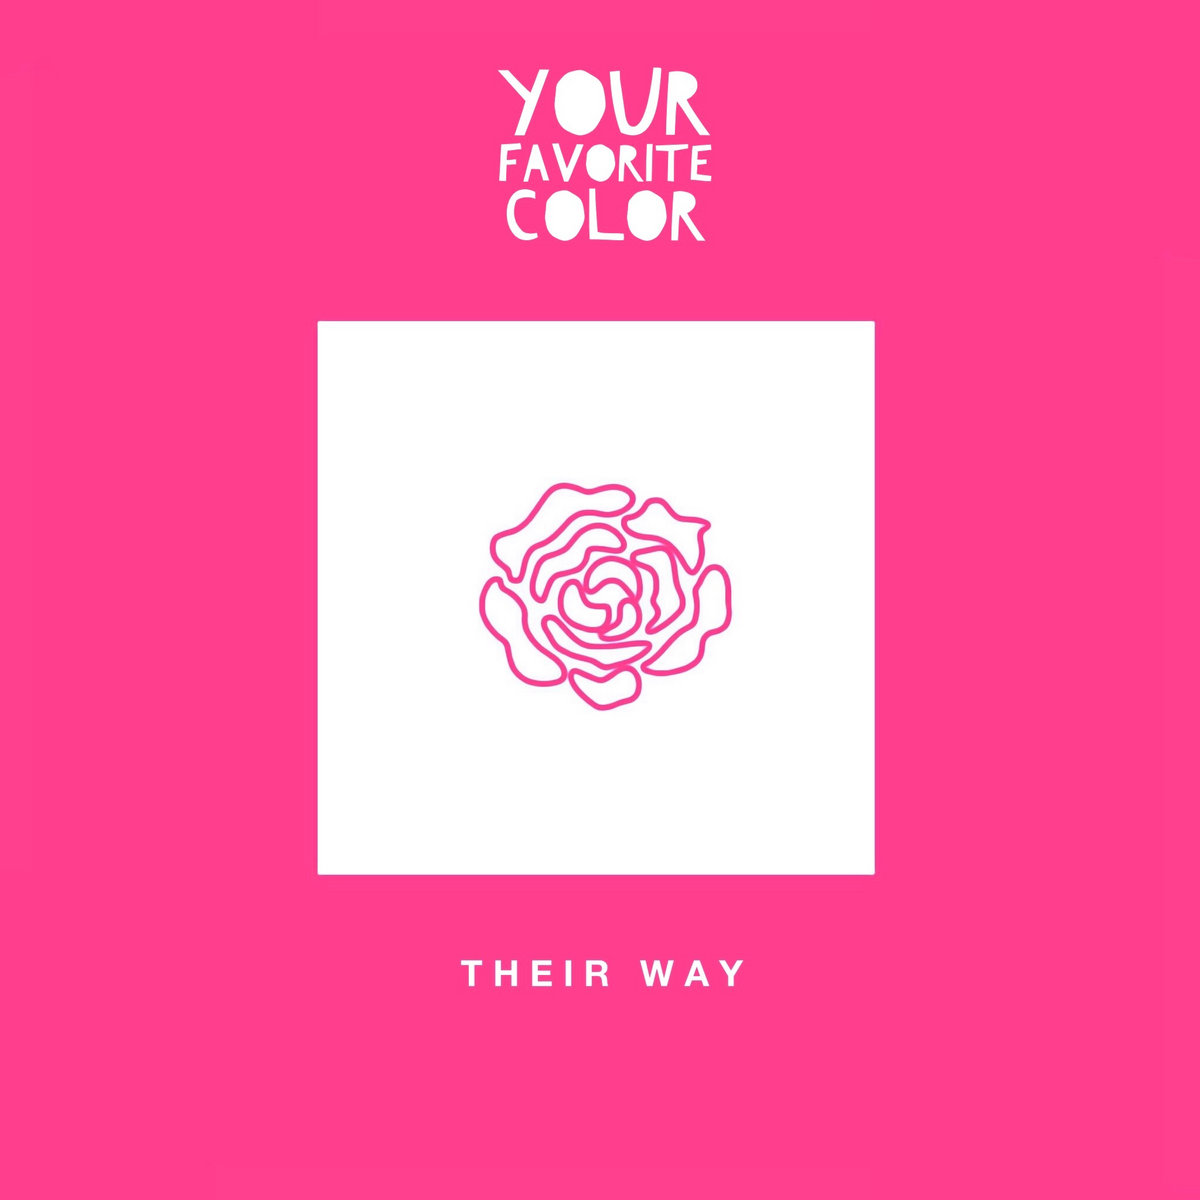 Their Way - Single Version | Your Favorite Color